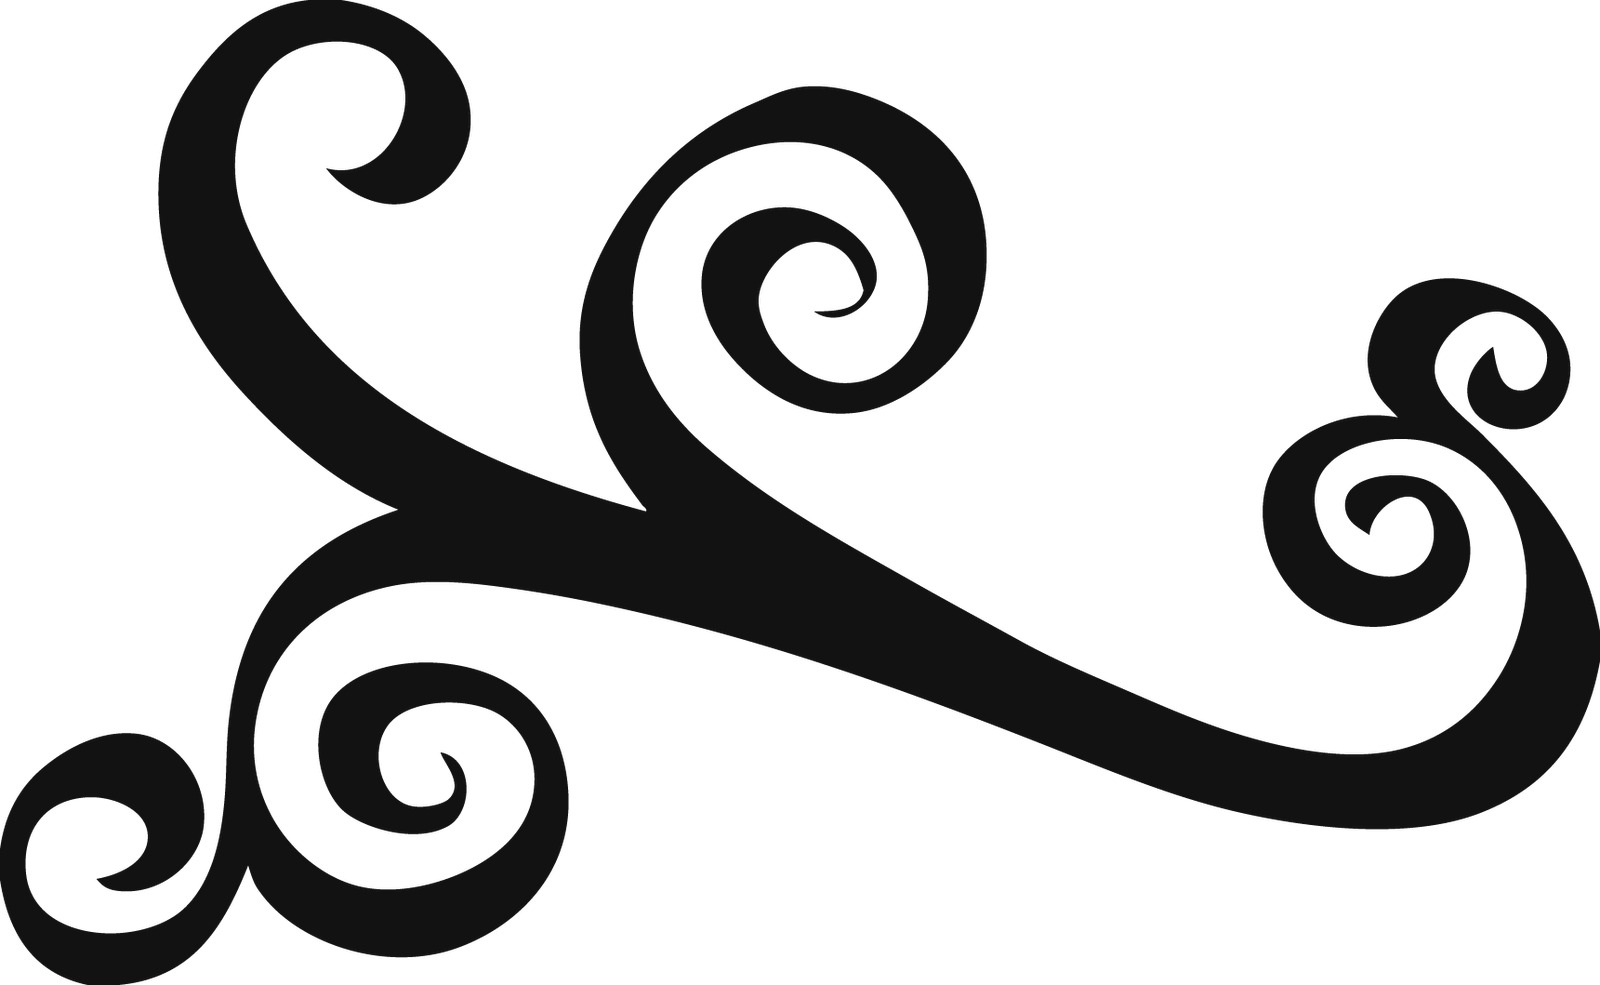 Simple swirls clipart free clipart image-Simple swirls clipart free clipart images-1